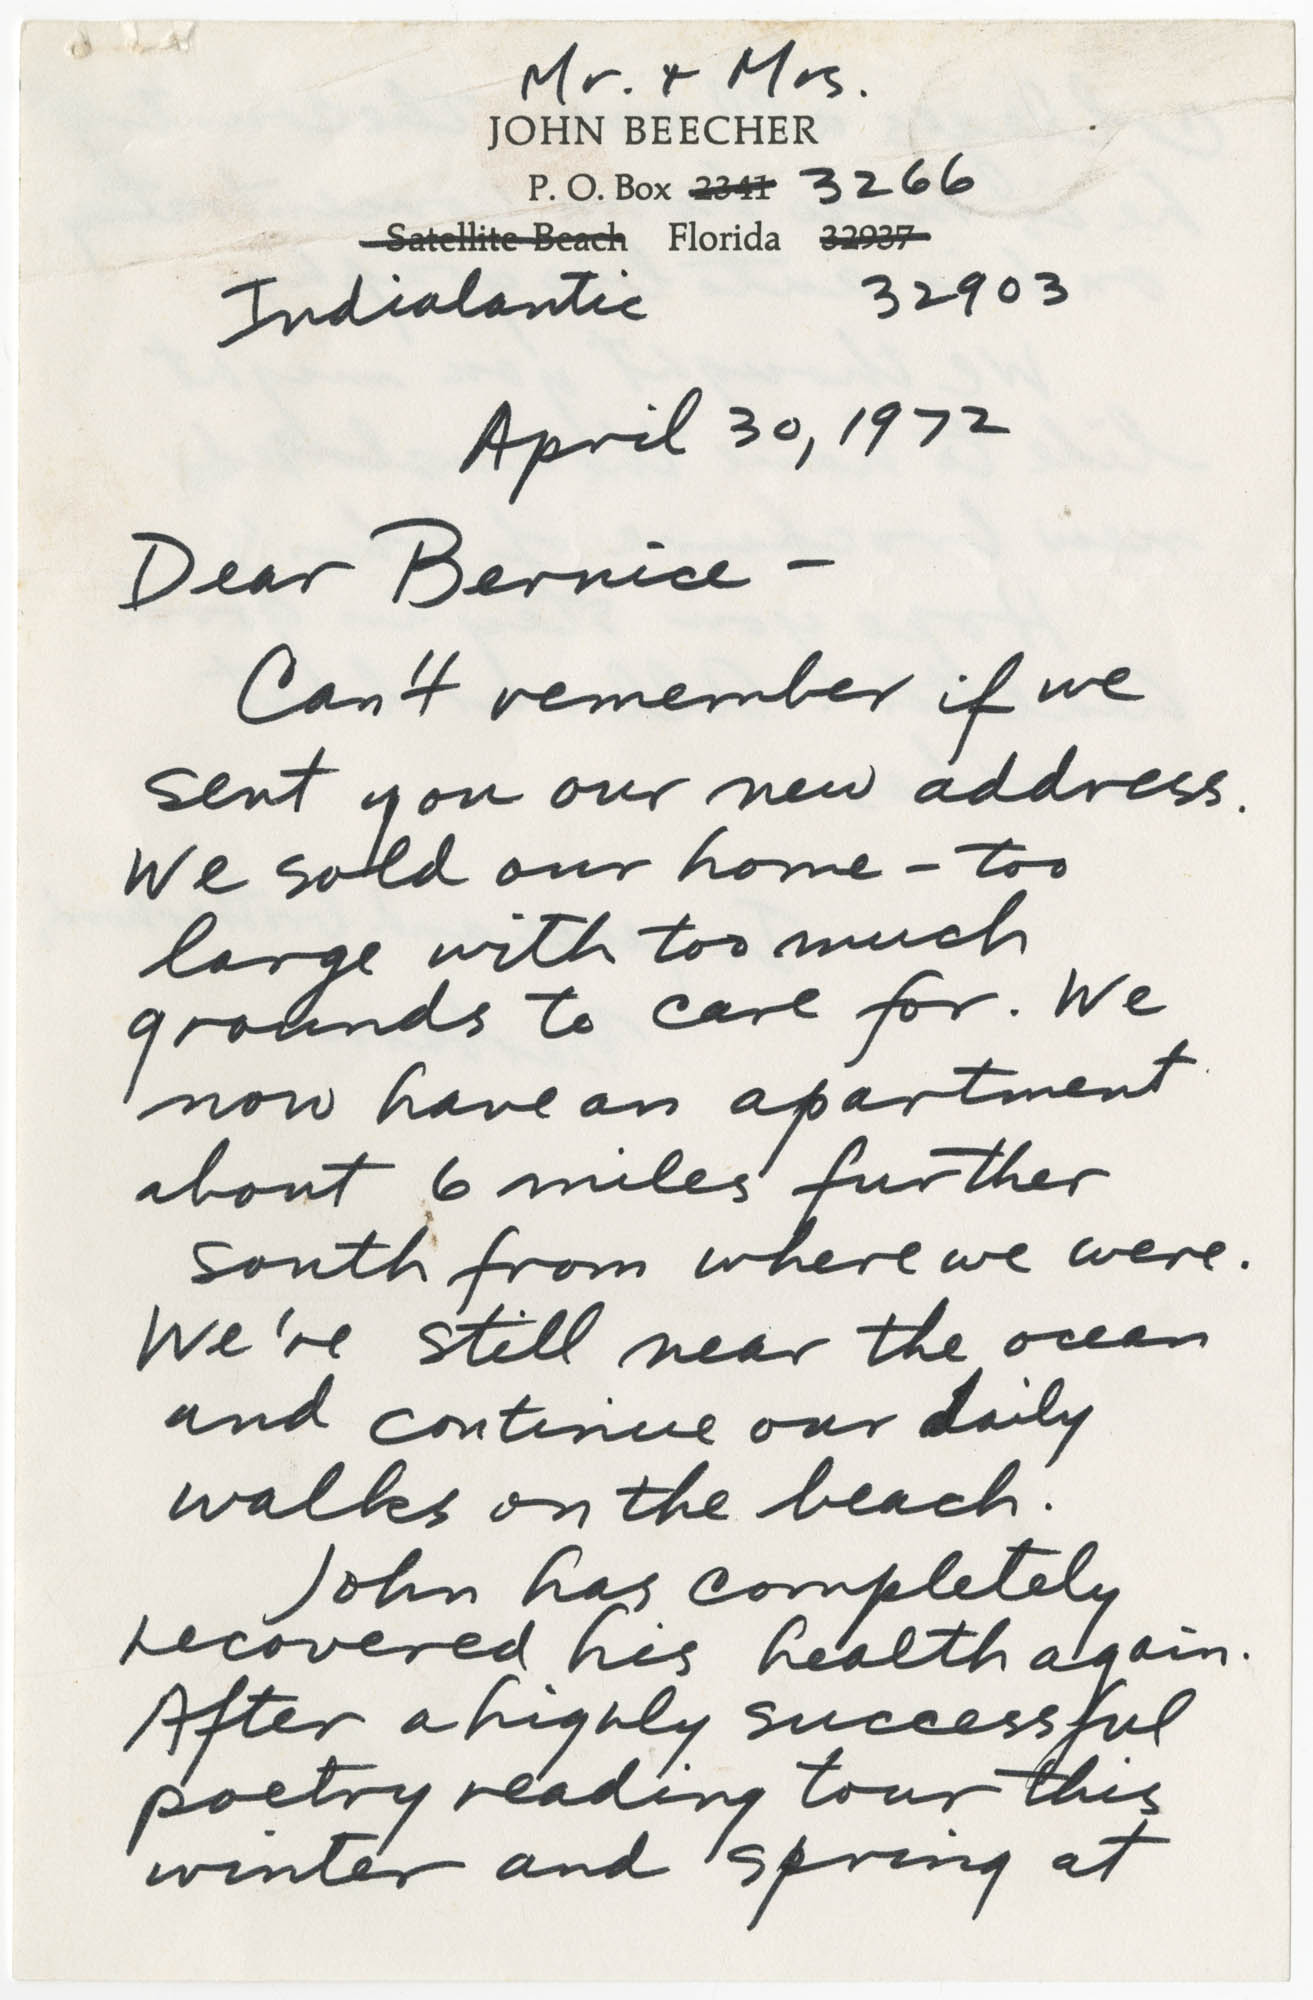 Letter from Barbara Beecher to Bernice Robinson, April 30, 1972